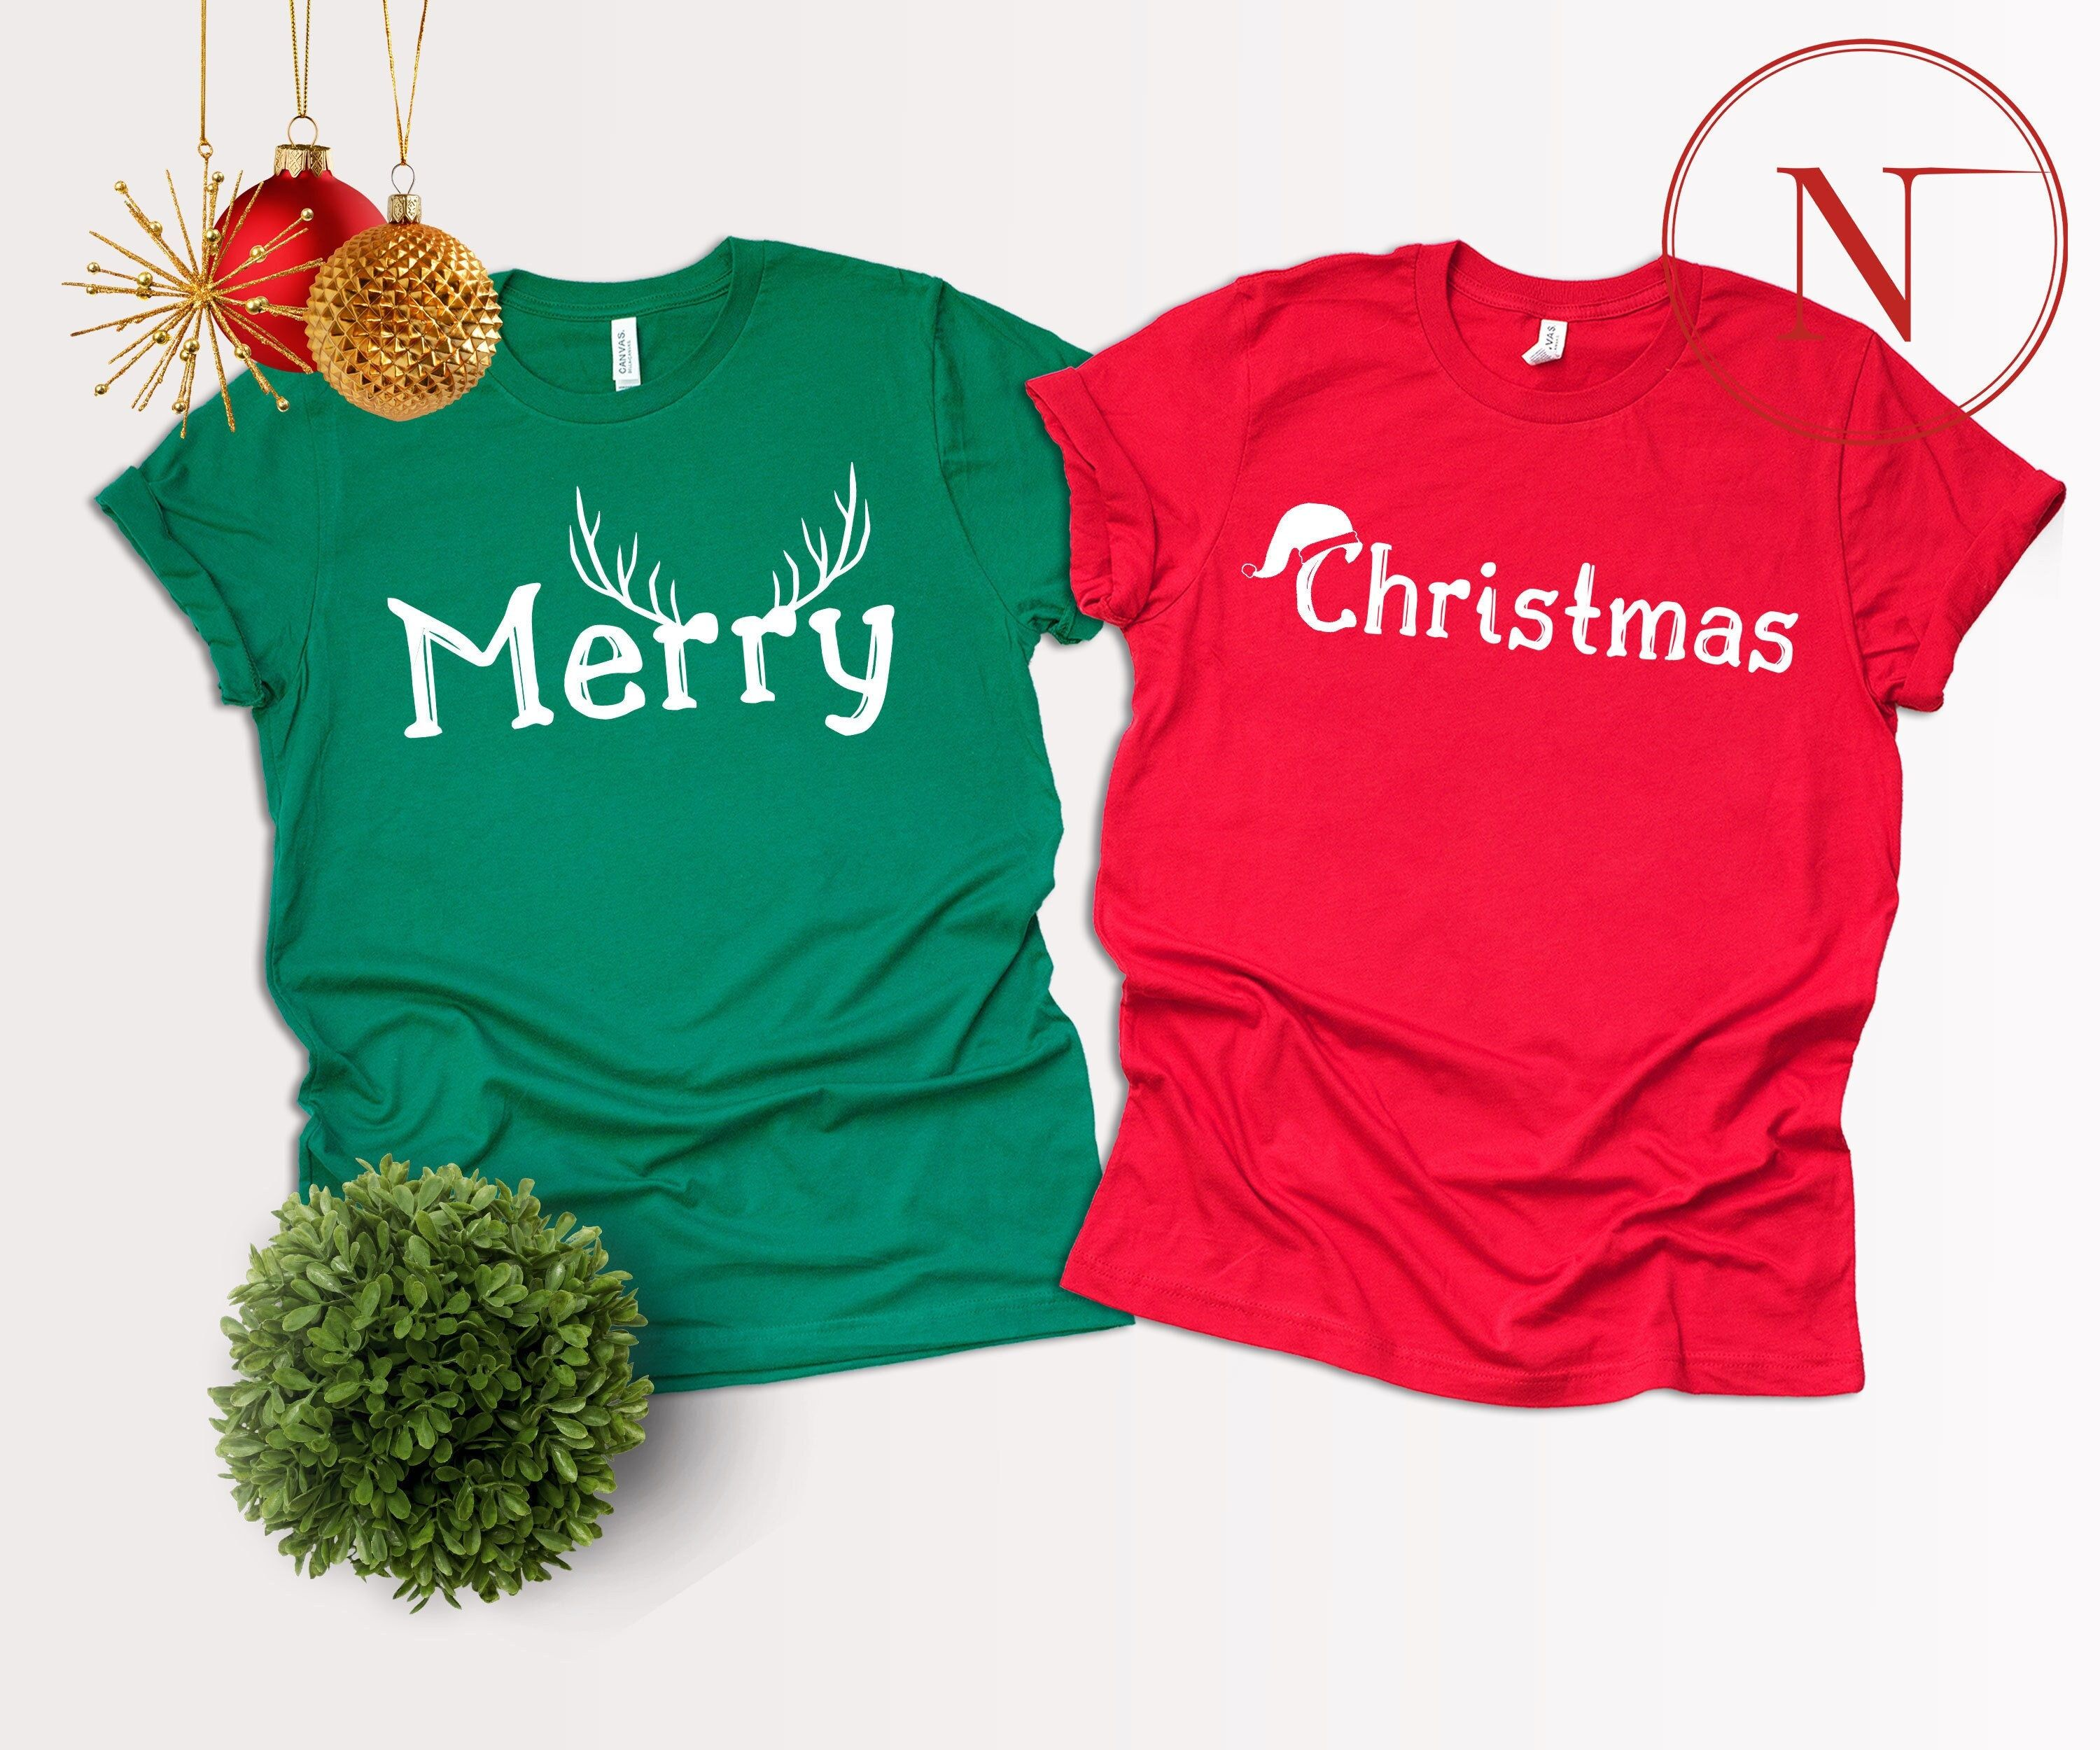 """""""Merry Deer Shirt, Christmas Santa Hat Shirt, Merry Christmas Matching Shirt, Christmas Couple Shirt, Holiday Xmas Shirt Gift Hello! Welcome to our store, We are glad to see you here. We are sure you will love our designs. We have 7/24 customer support if you have any questions please contact us. HOW TO ORDER- 1-) Please, Check and Review all Photos. 2-) Select Your T-shirt Color. 3-) Select Your T-shirt Size. 4-) Choose Your Quantity as much as you want. 5-)Please click the \""""Proceed to Check O"""